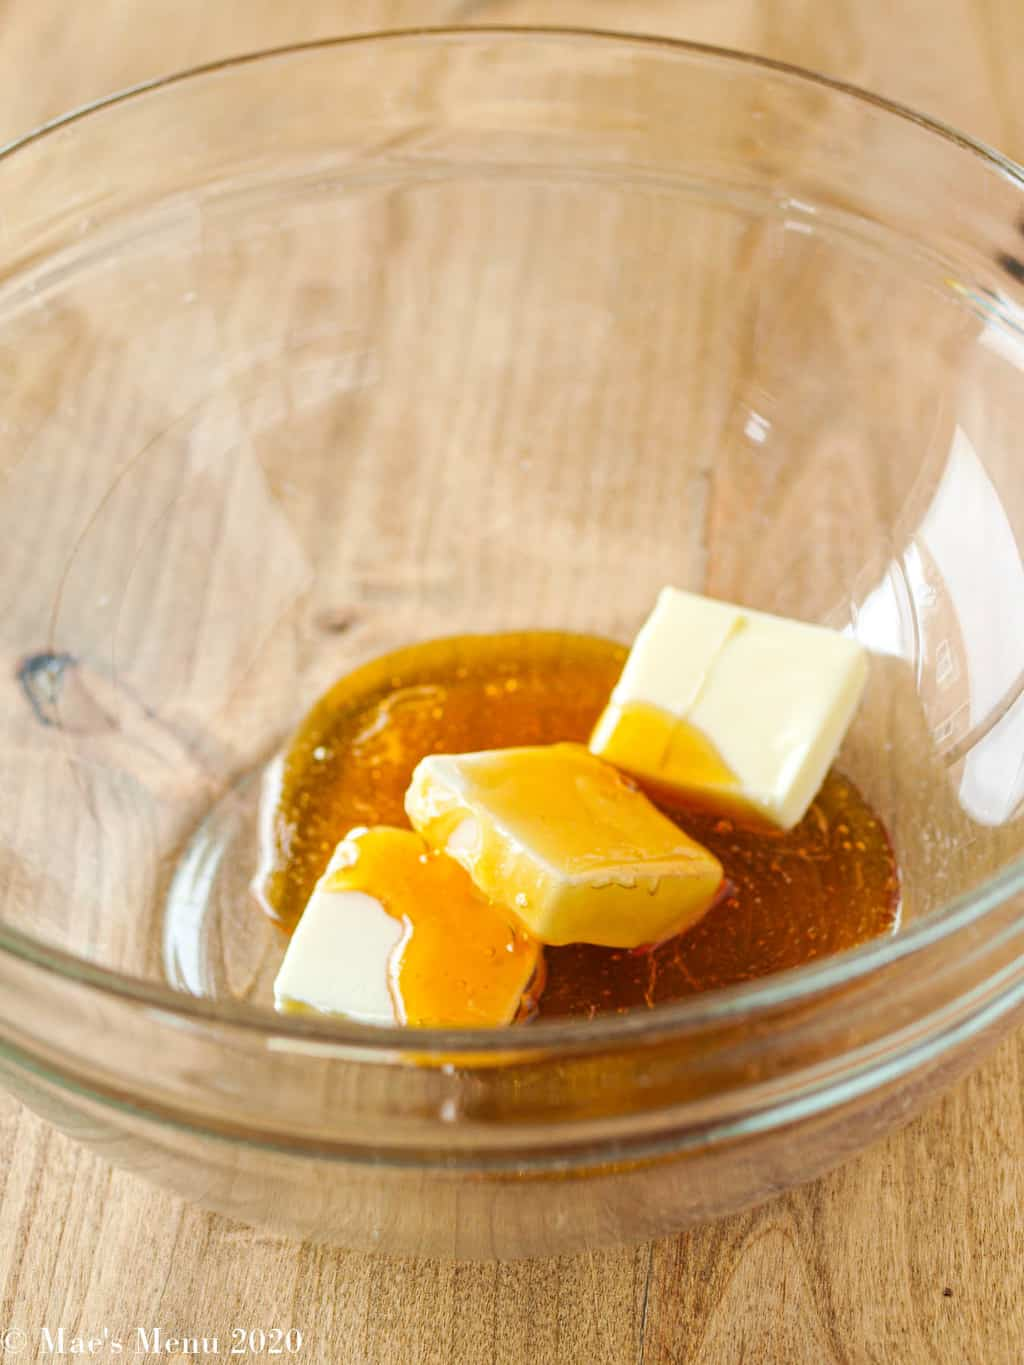 Butter and honey in a mixing bowl